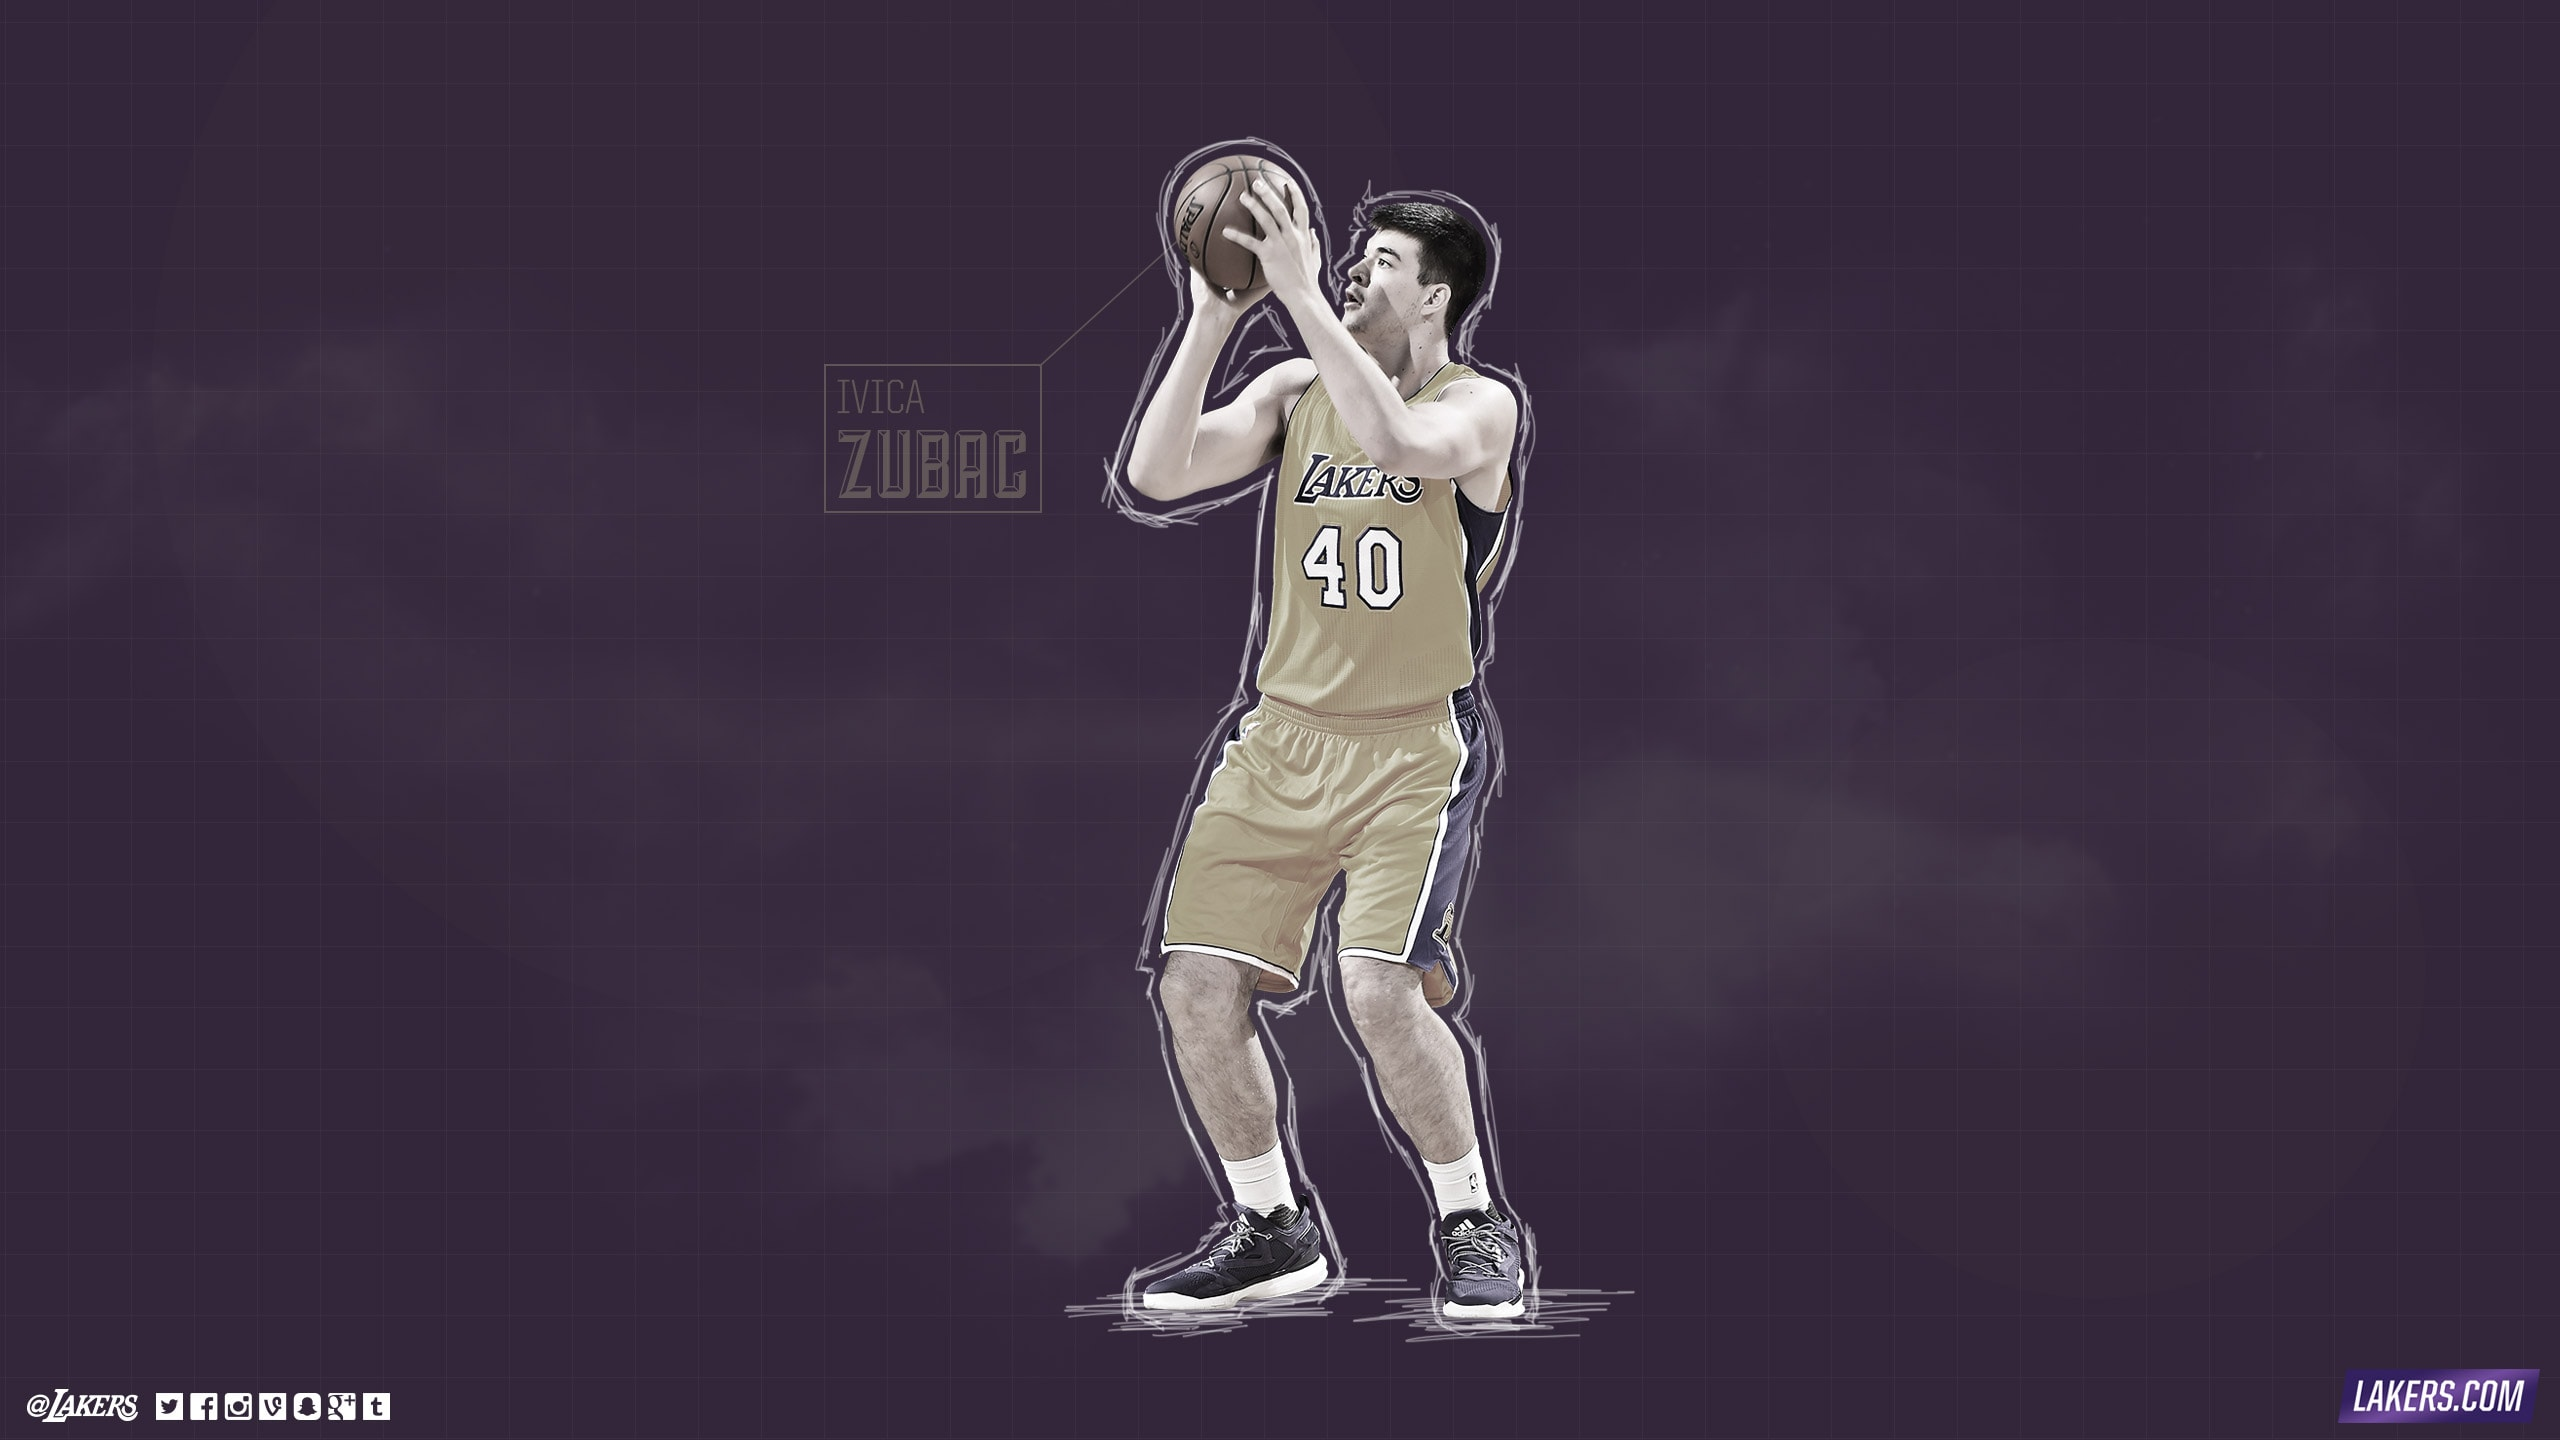 Ivica Zubac Player Wallpaper